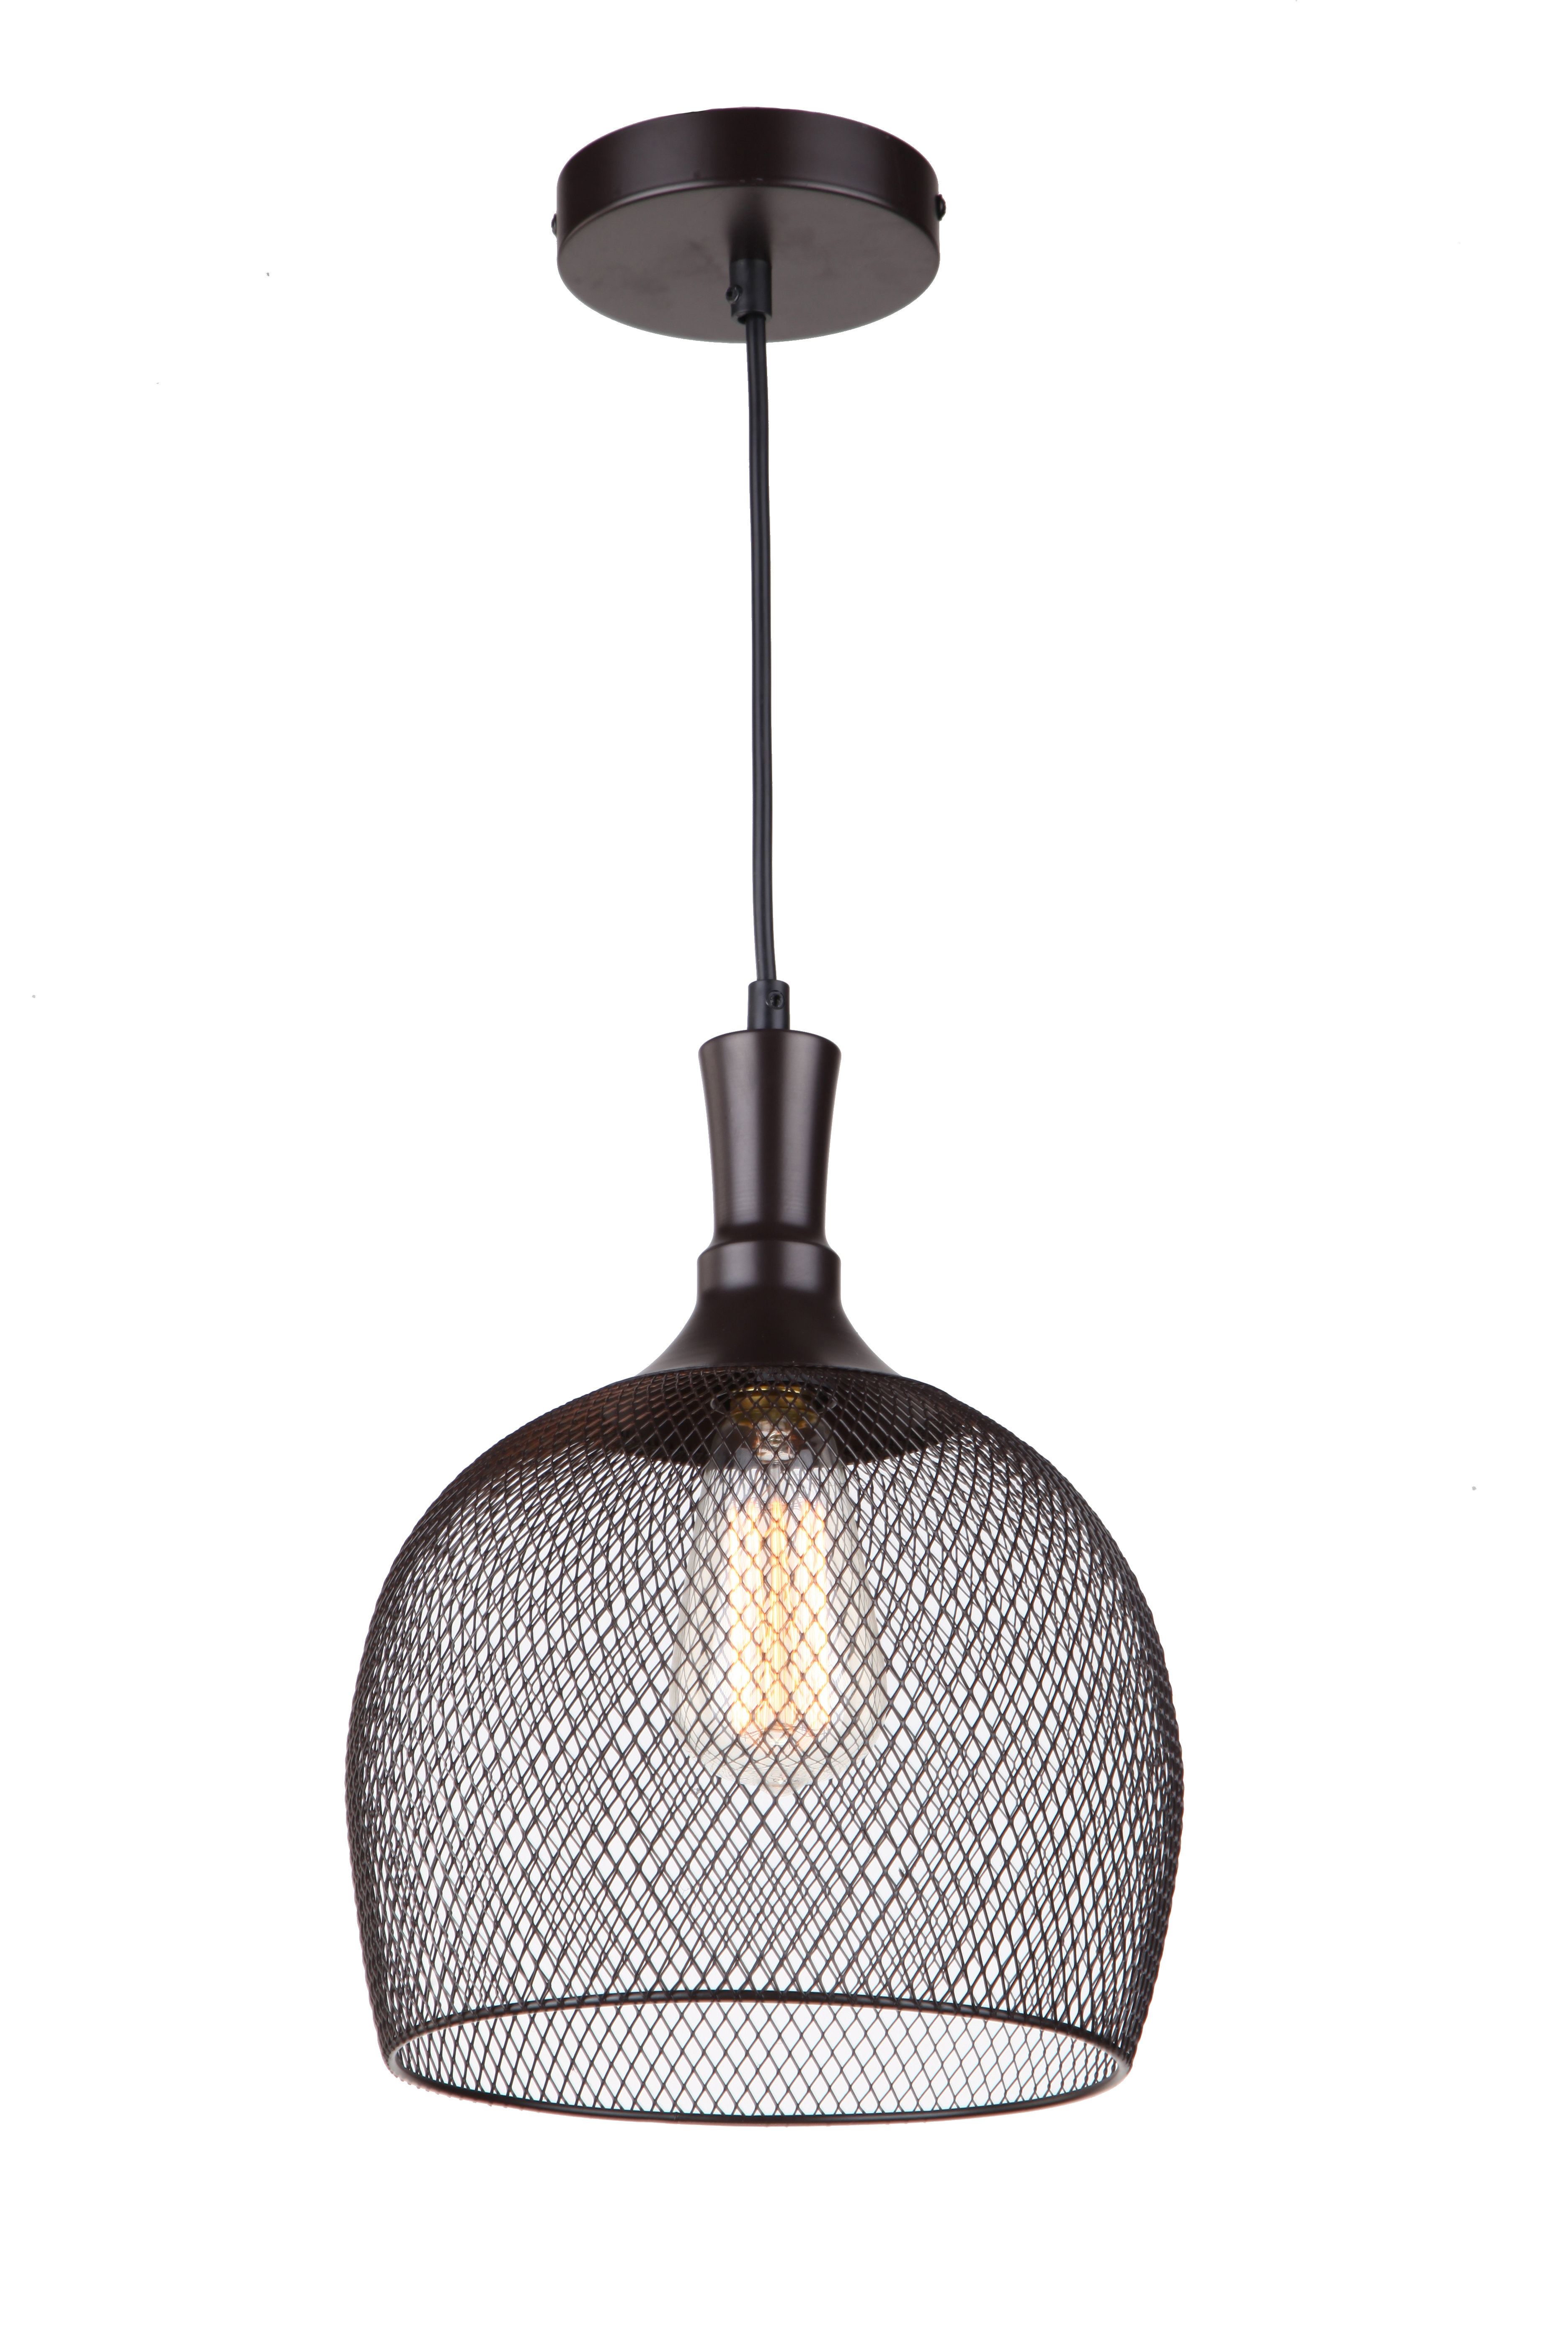 Alec 1 Light Dome Pendant Within Latest Rossi Industrial Vintage 1 Light Geometric Pendants (View 2 of 25)